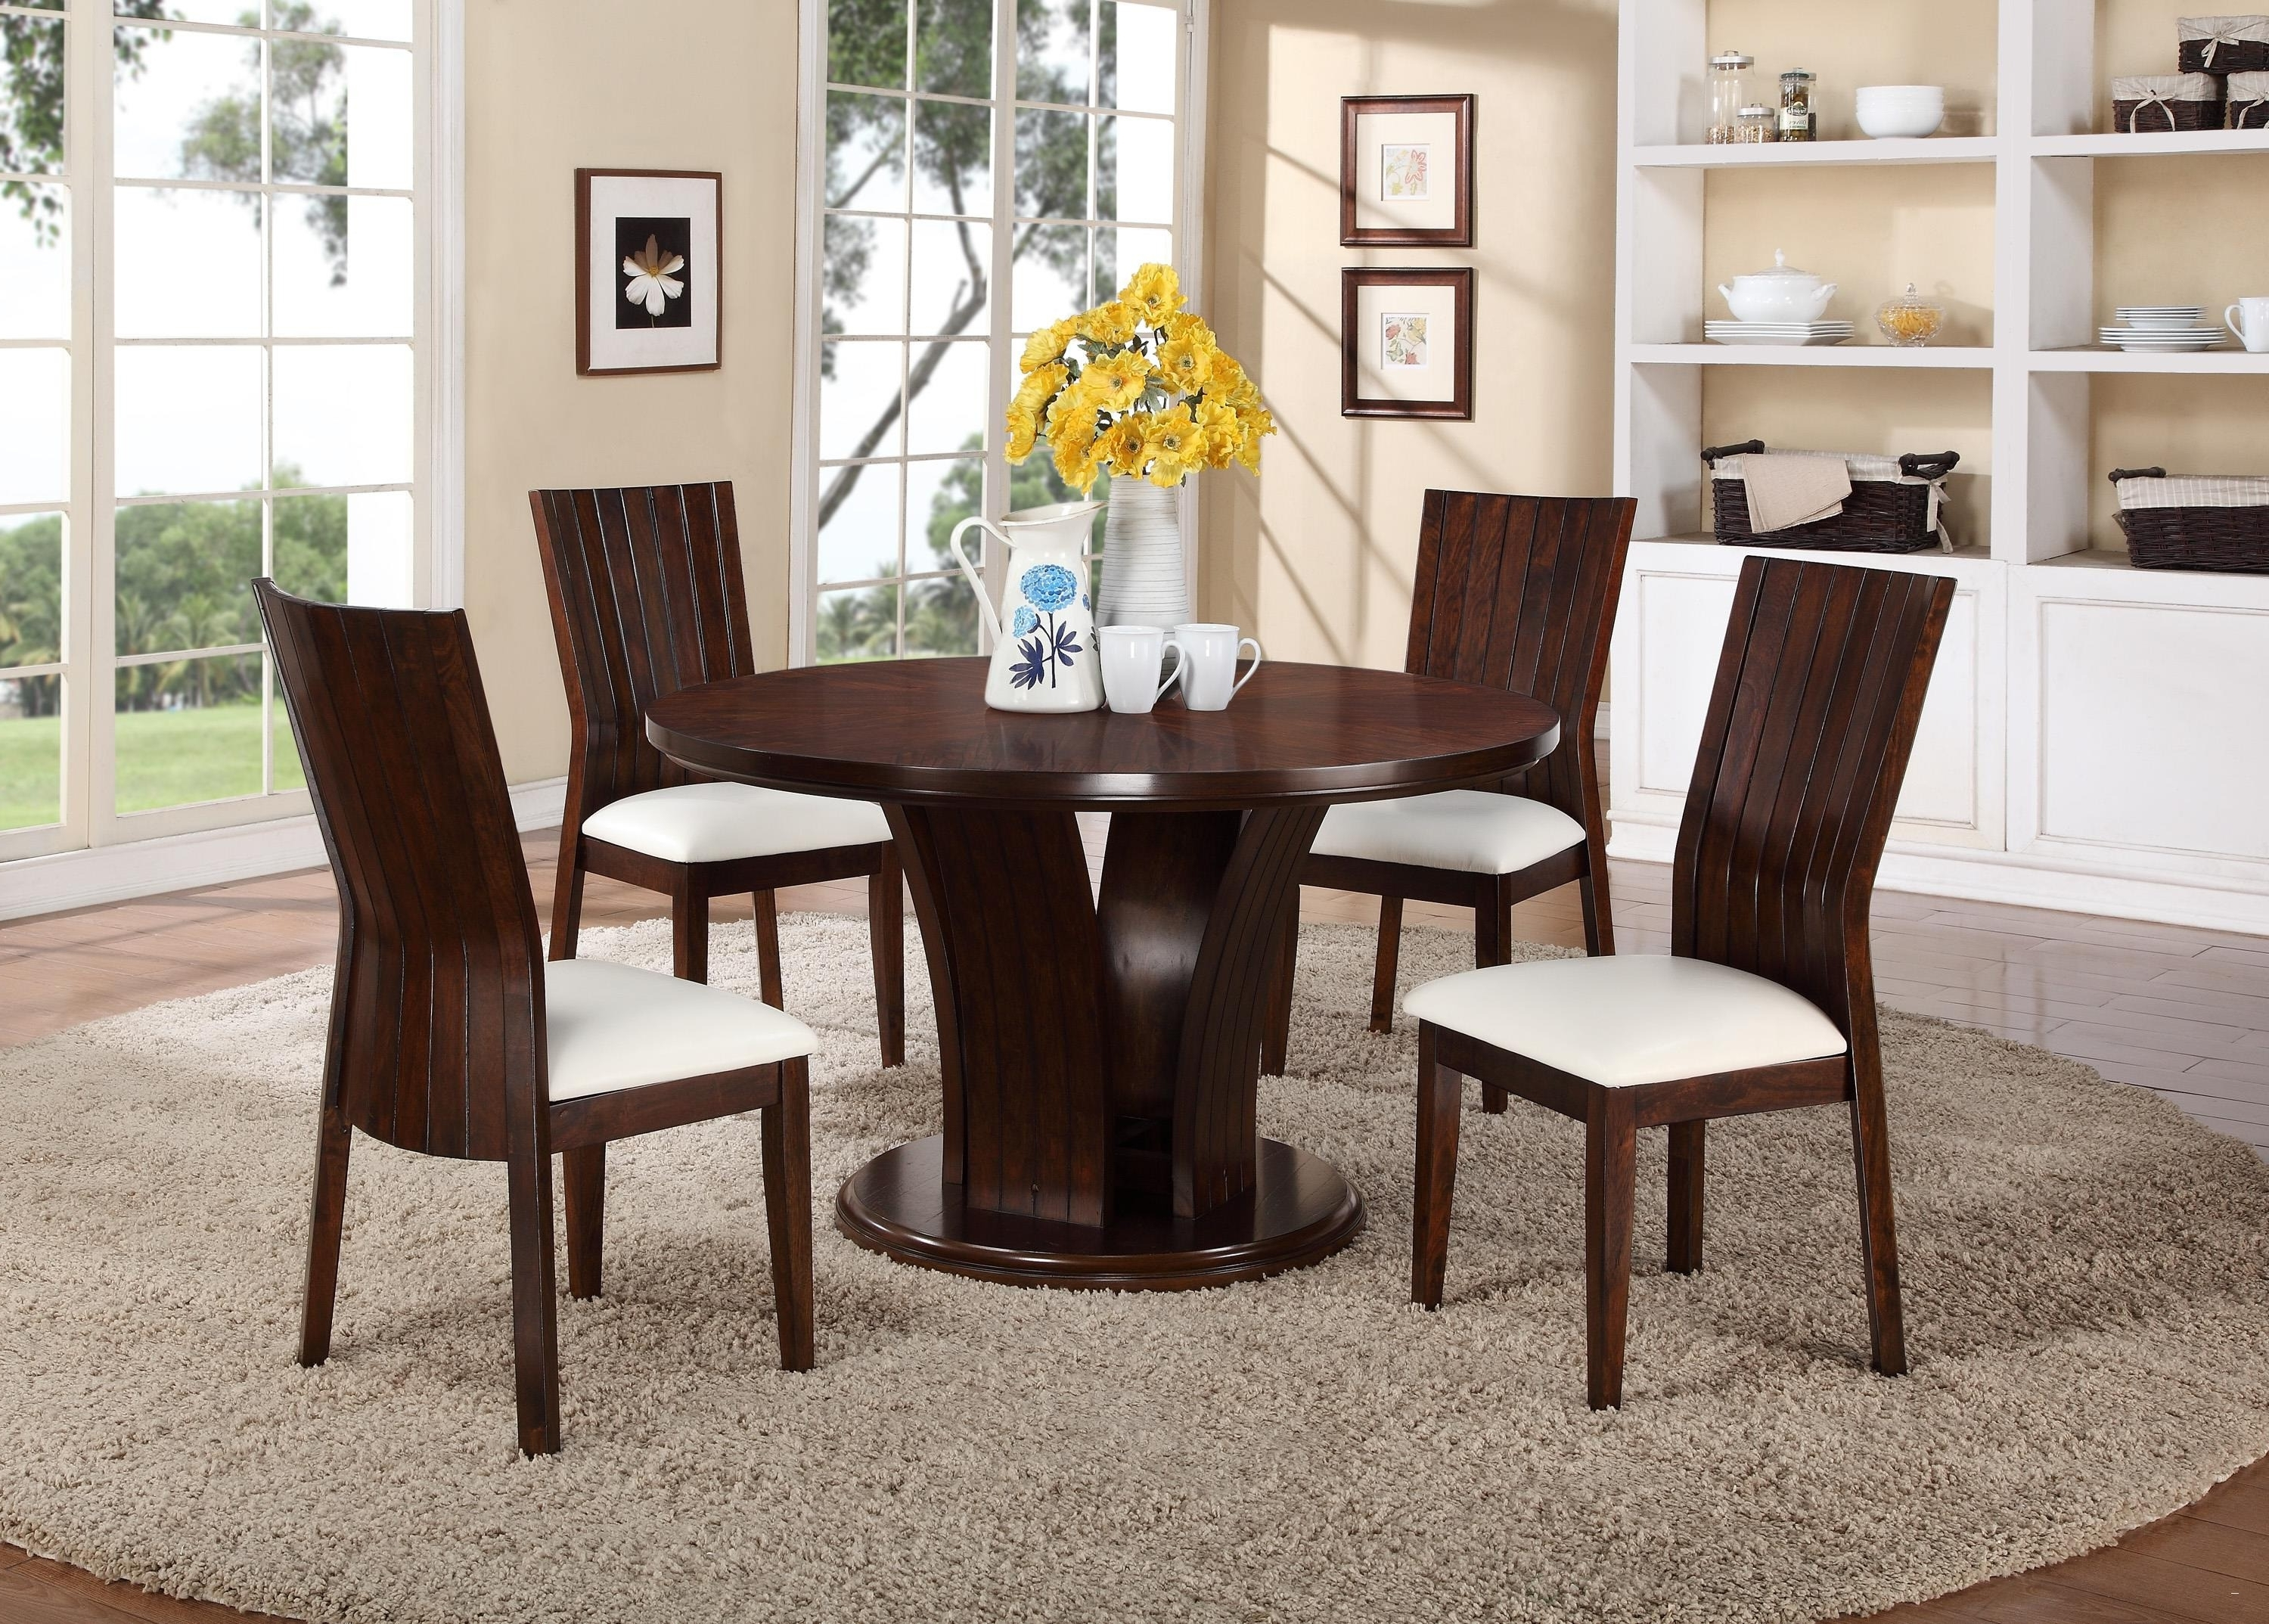 Jaxon Grey 5 Piece Round Extension Dining Sets With Upholstered Chairs In Recent Ashton Round Pedestal Dining Table Elegant Kitchen Dining Area (Gallery 19 of 25)